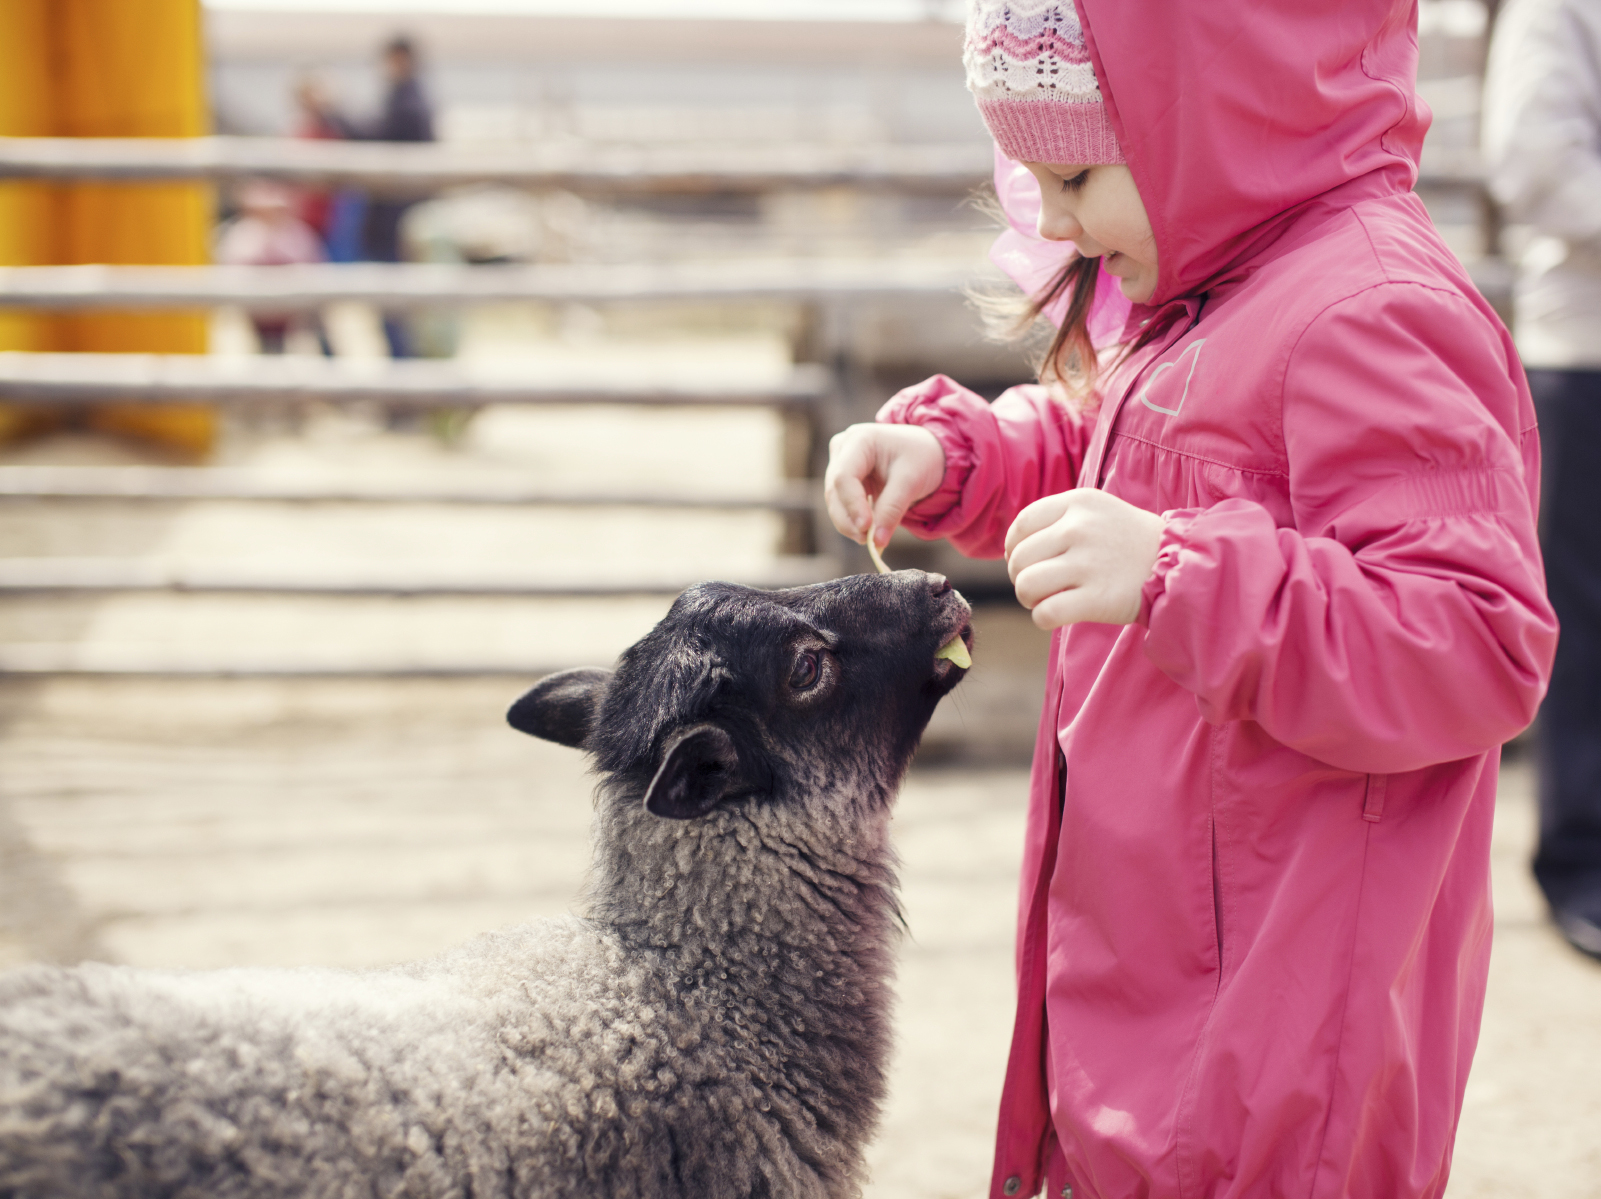 A camper helps feed one of the lambs at Wolfe's Neck Farm in Freeport.